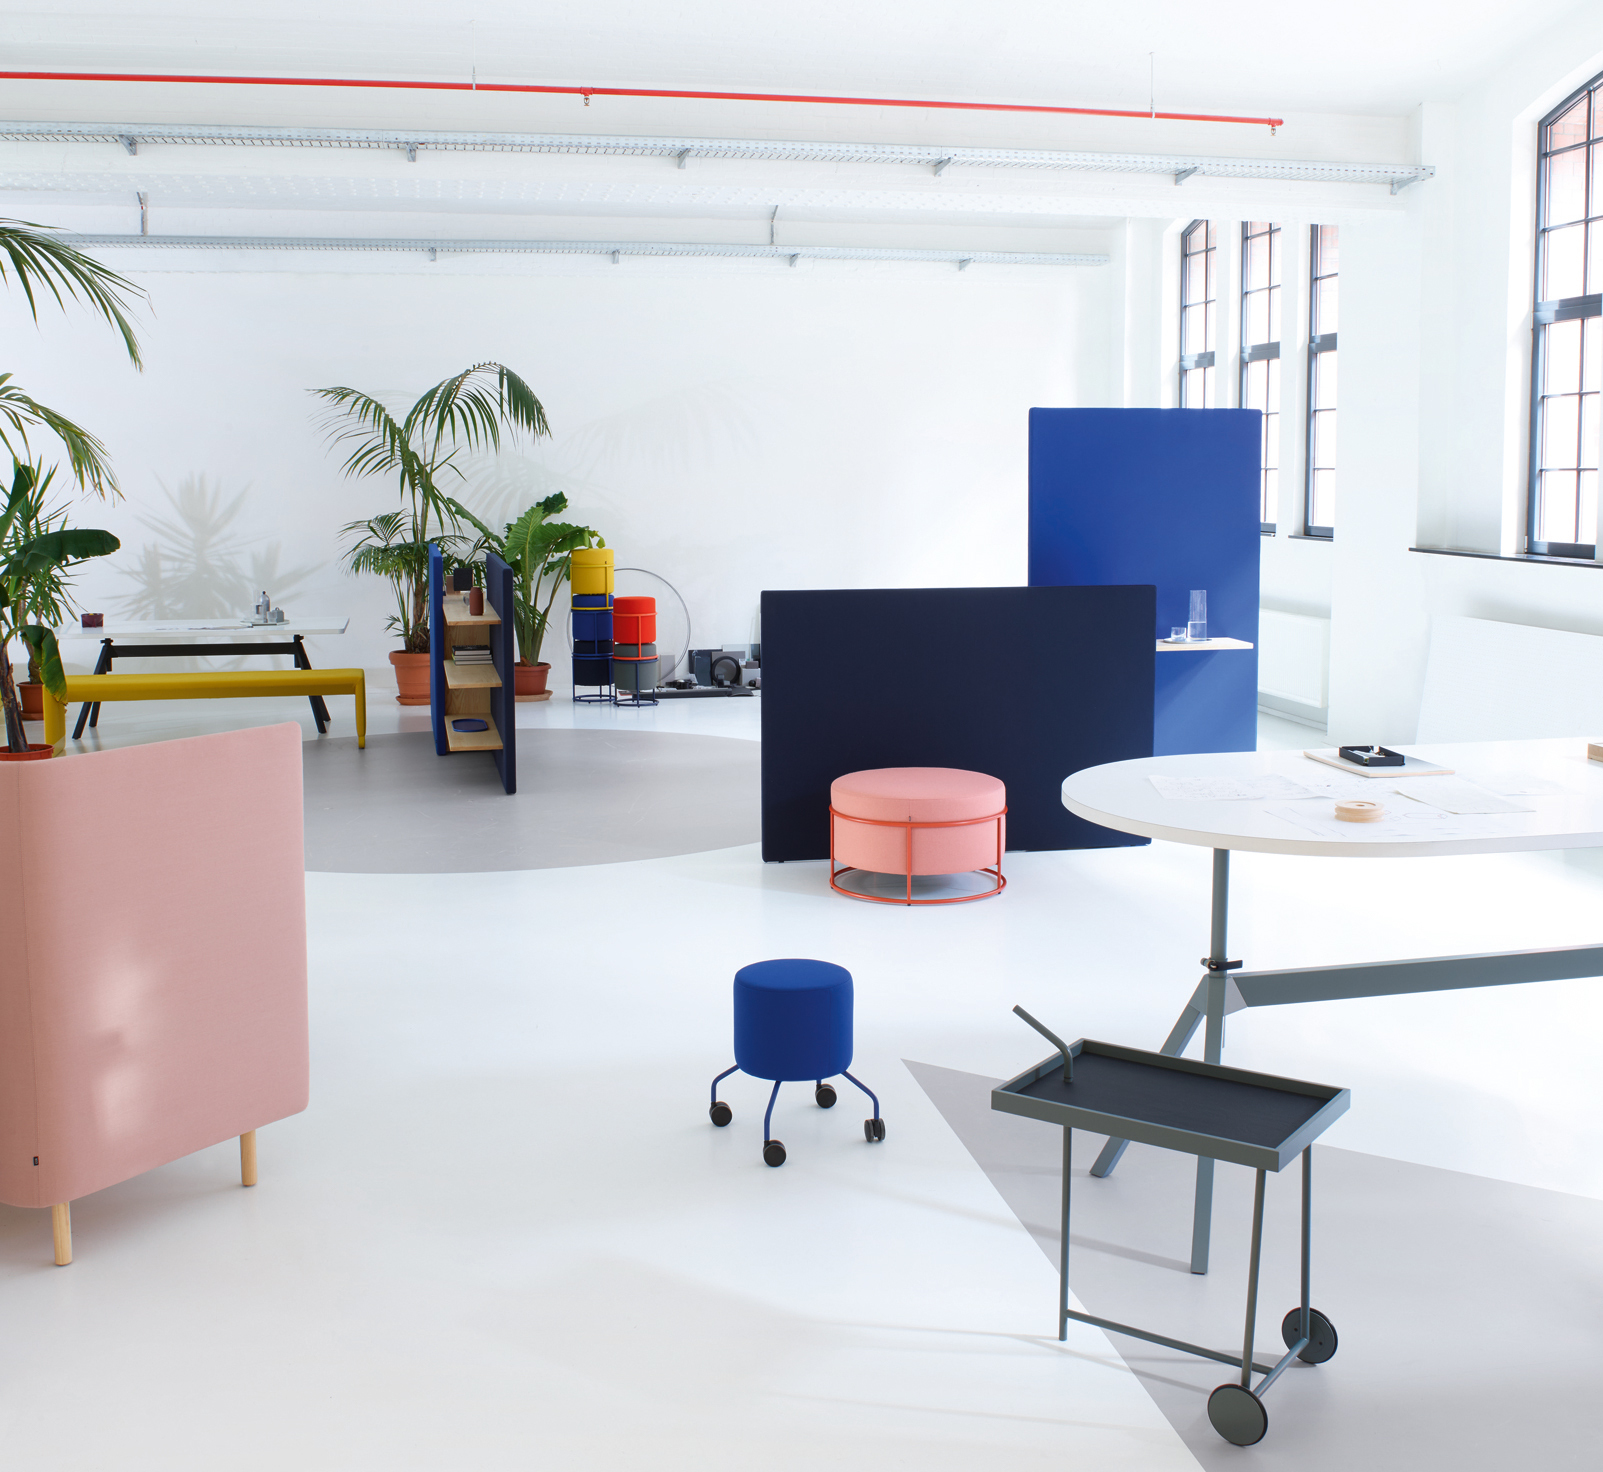 For The Seemingly Homey Zones Within Office Designers Developed Furniture These Can Now Be Playfully Combined And Fit Both Worlds